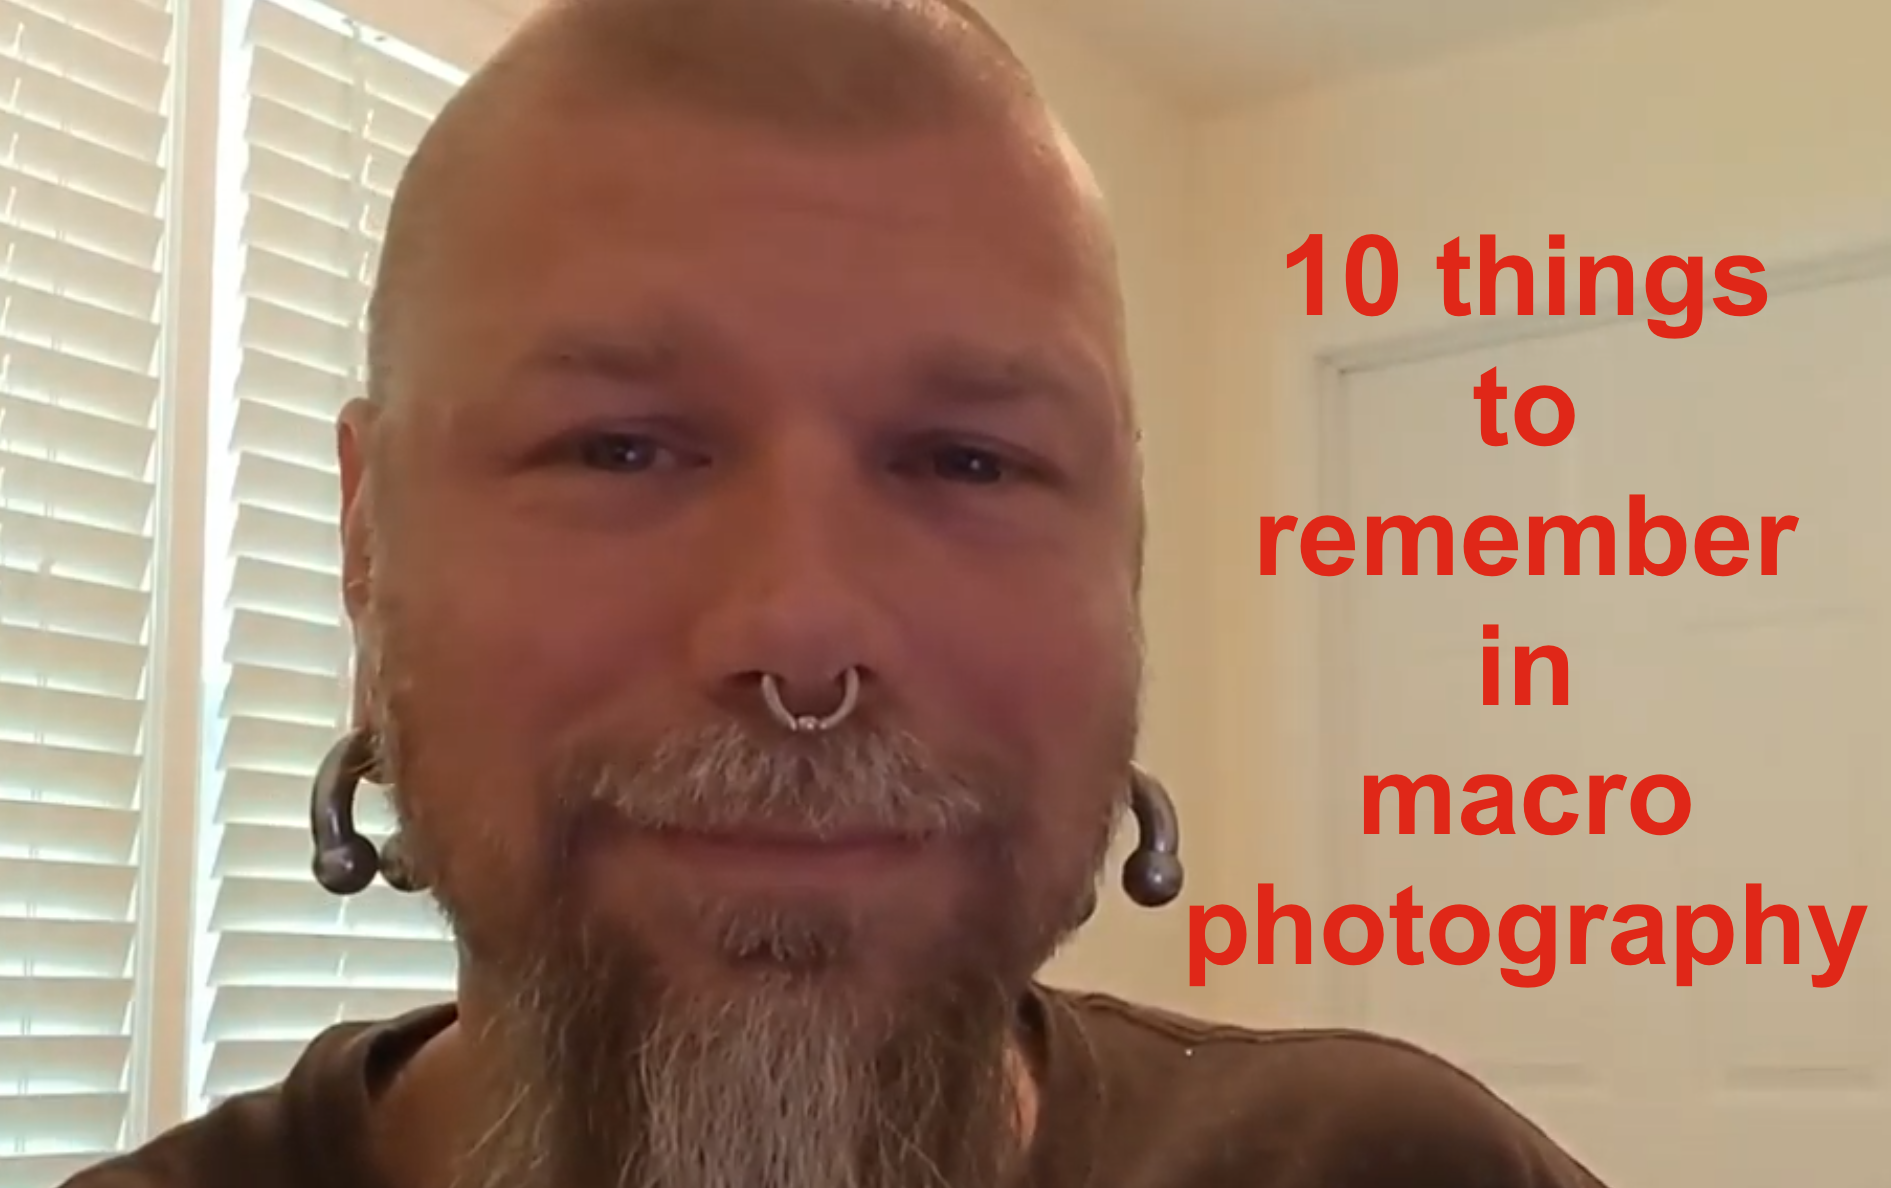 10 things to remember in macro photography